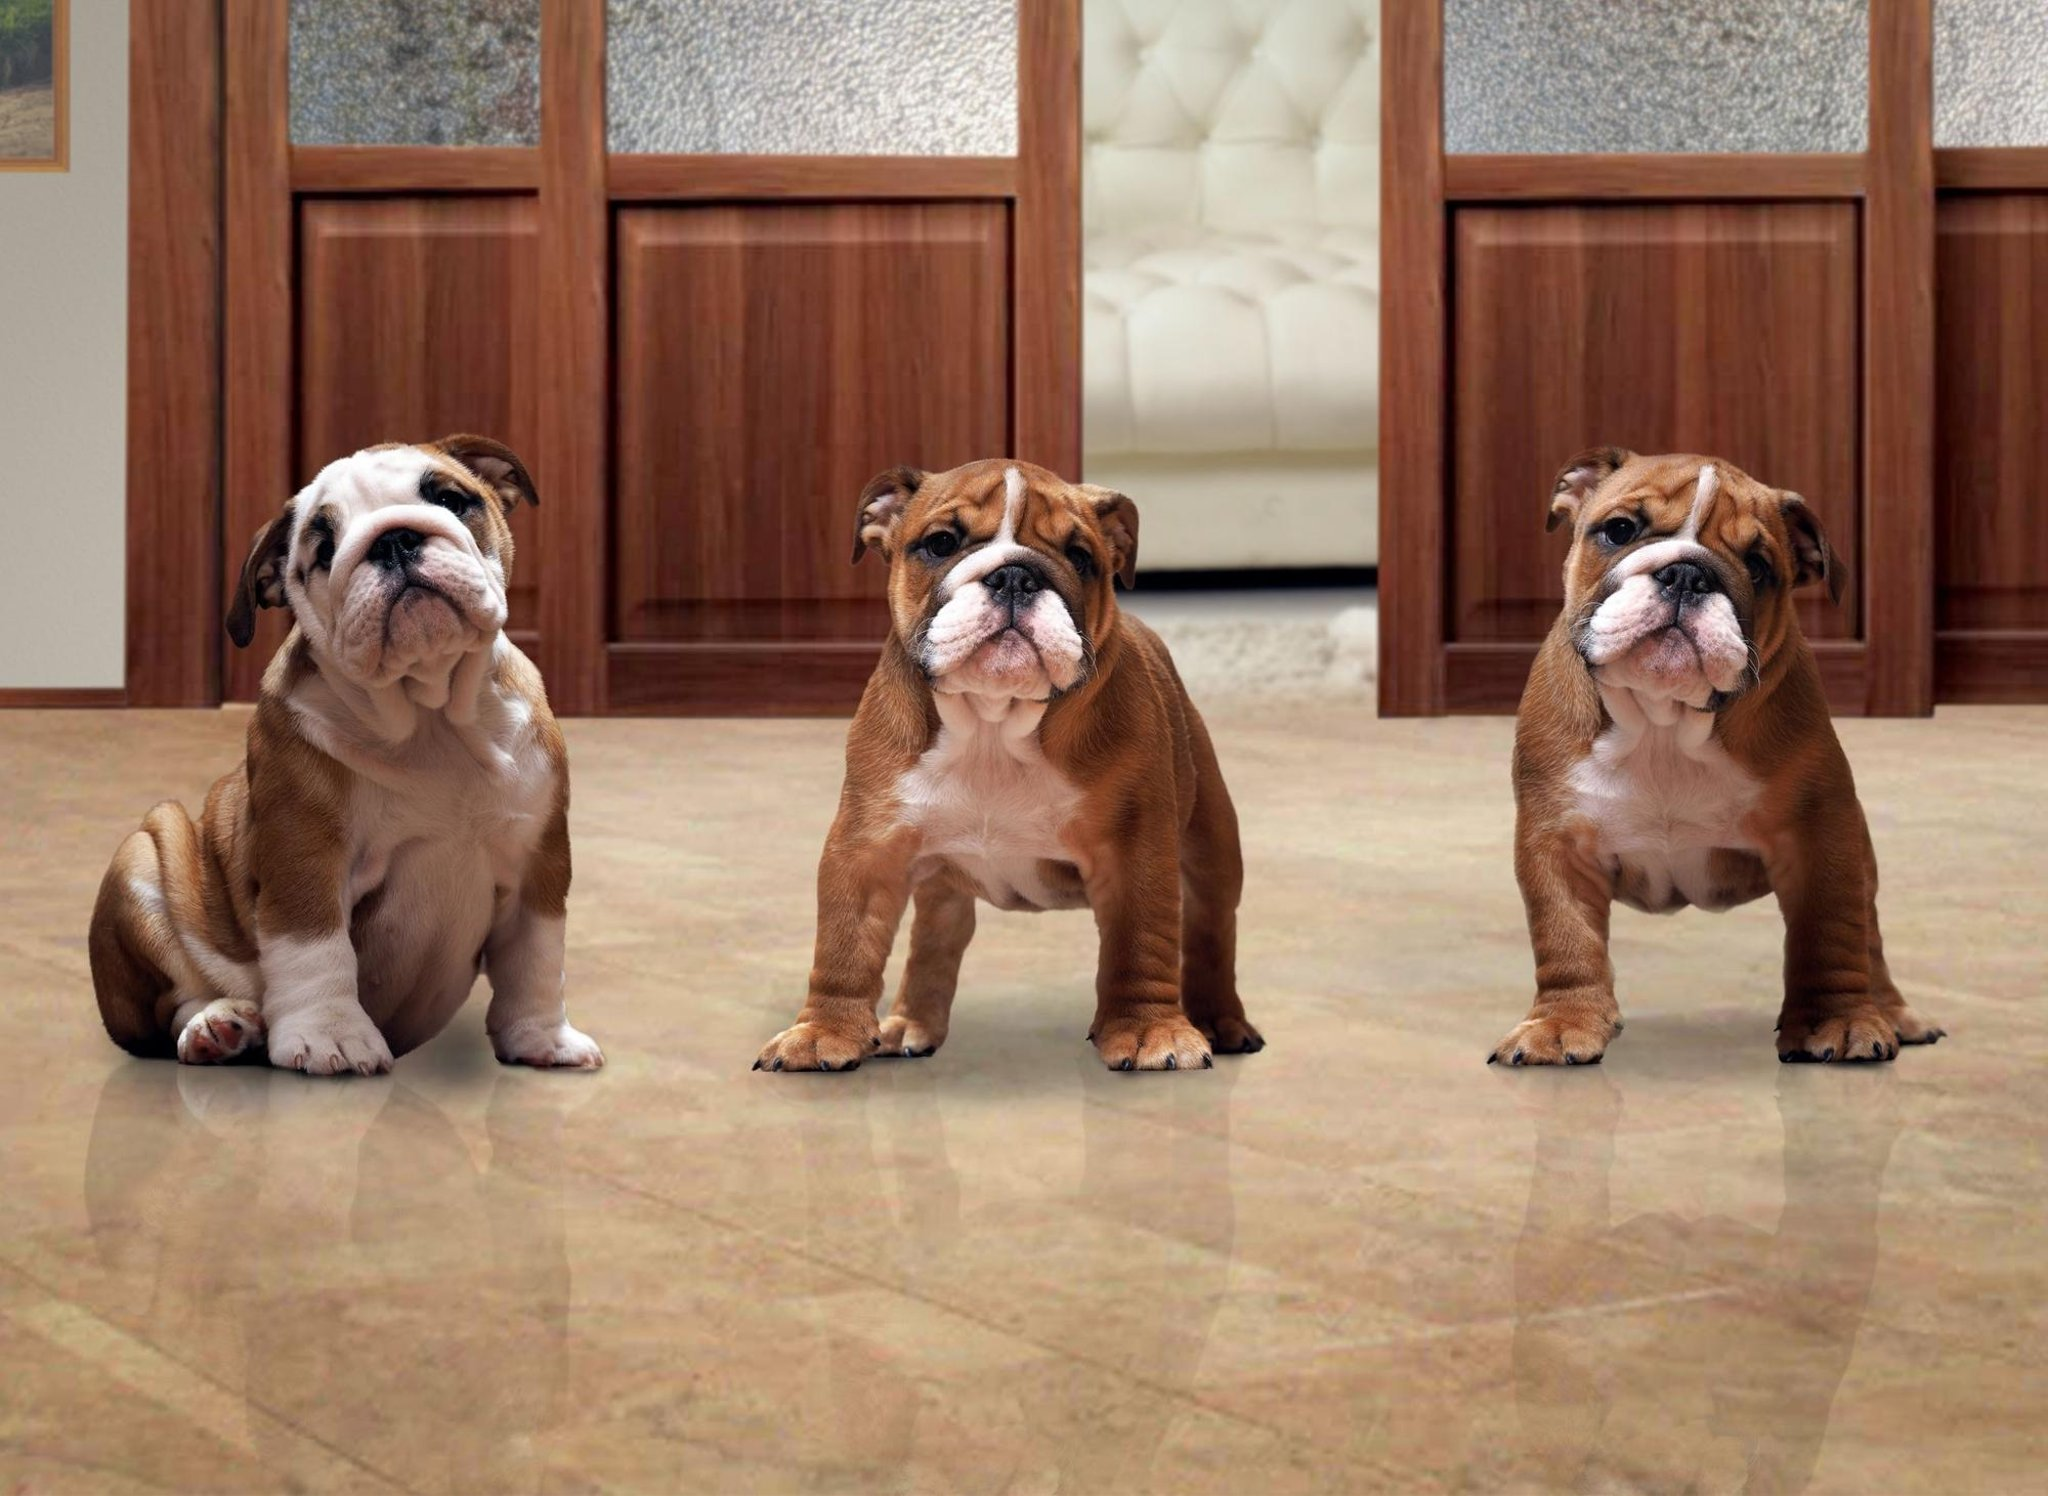 The 10 best adorable dog breeds for people living in a flat or apartment